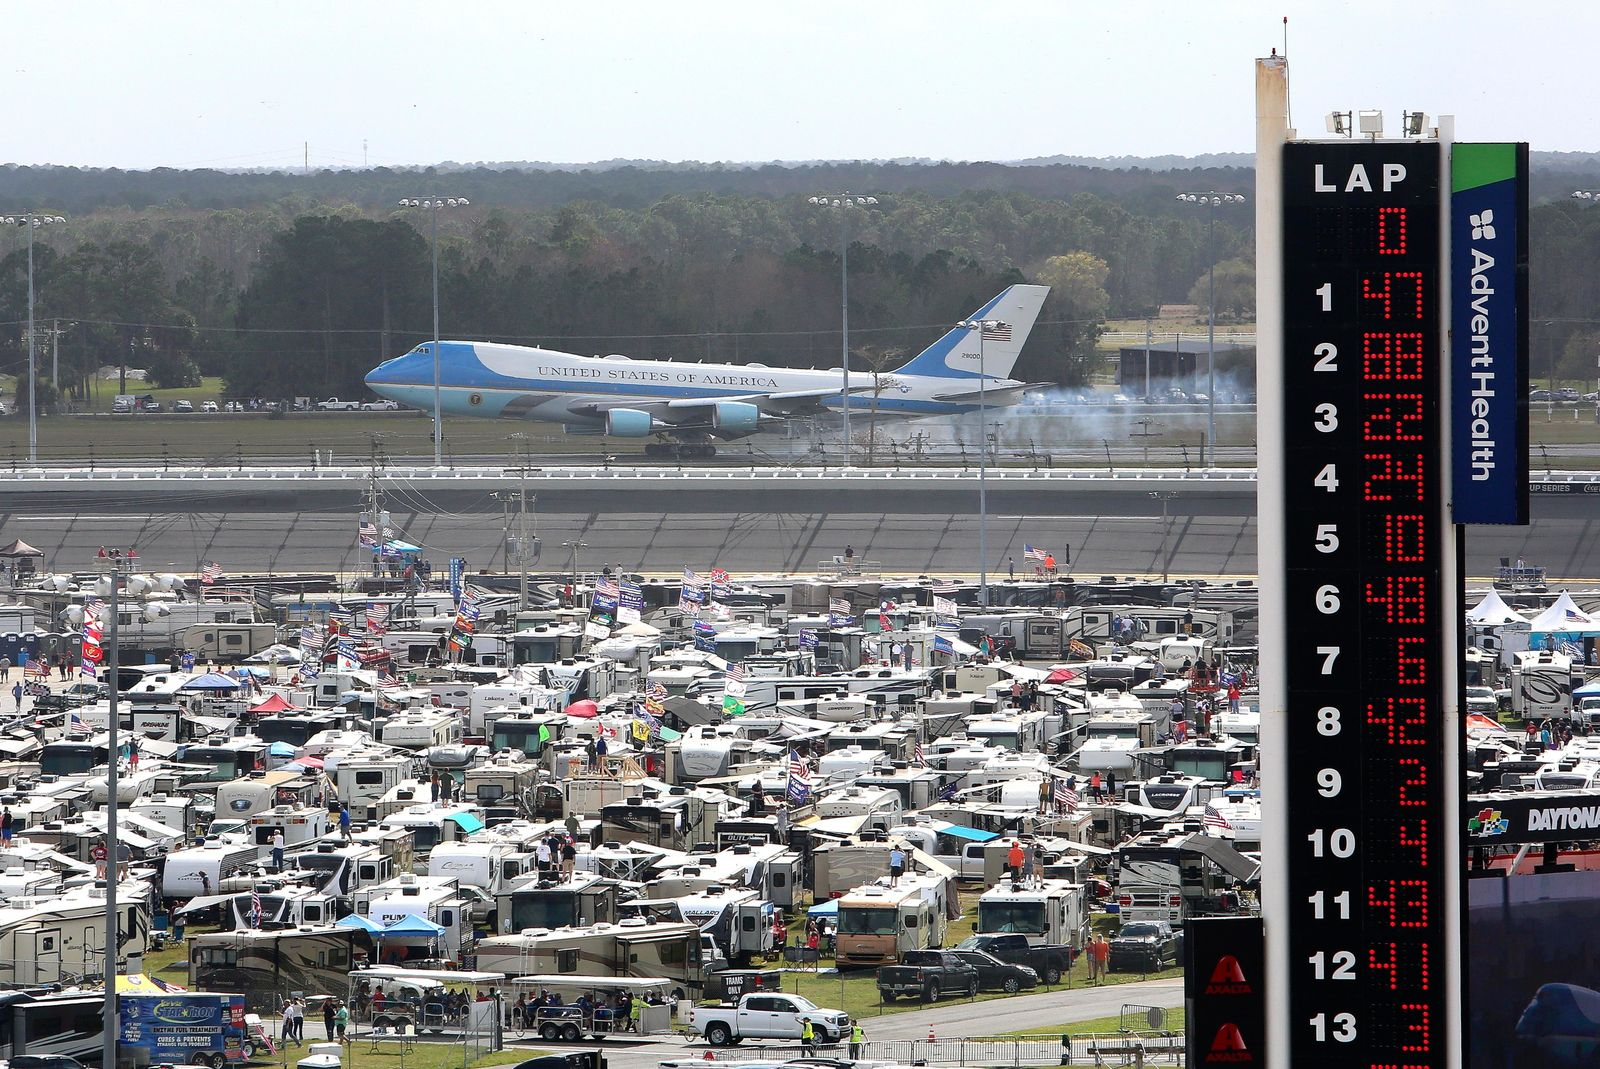 Air Force One touches down at the Daytona Beach International's Airport as seen from Daytona International Speedway as President Donald Trump makes his arrival to attend the NASCAR Daytona 500 auto race, Sunday, Feb. 16, 2020, in Daytona Beach, Fla. (AP Photo/David Graham)